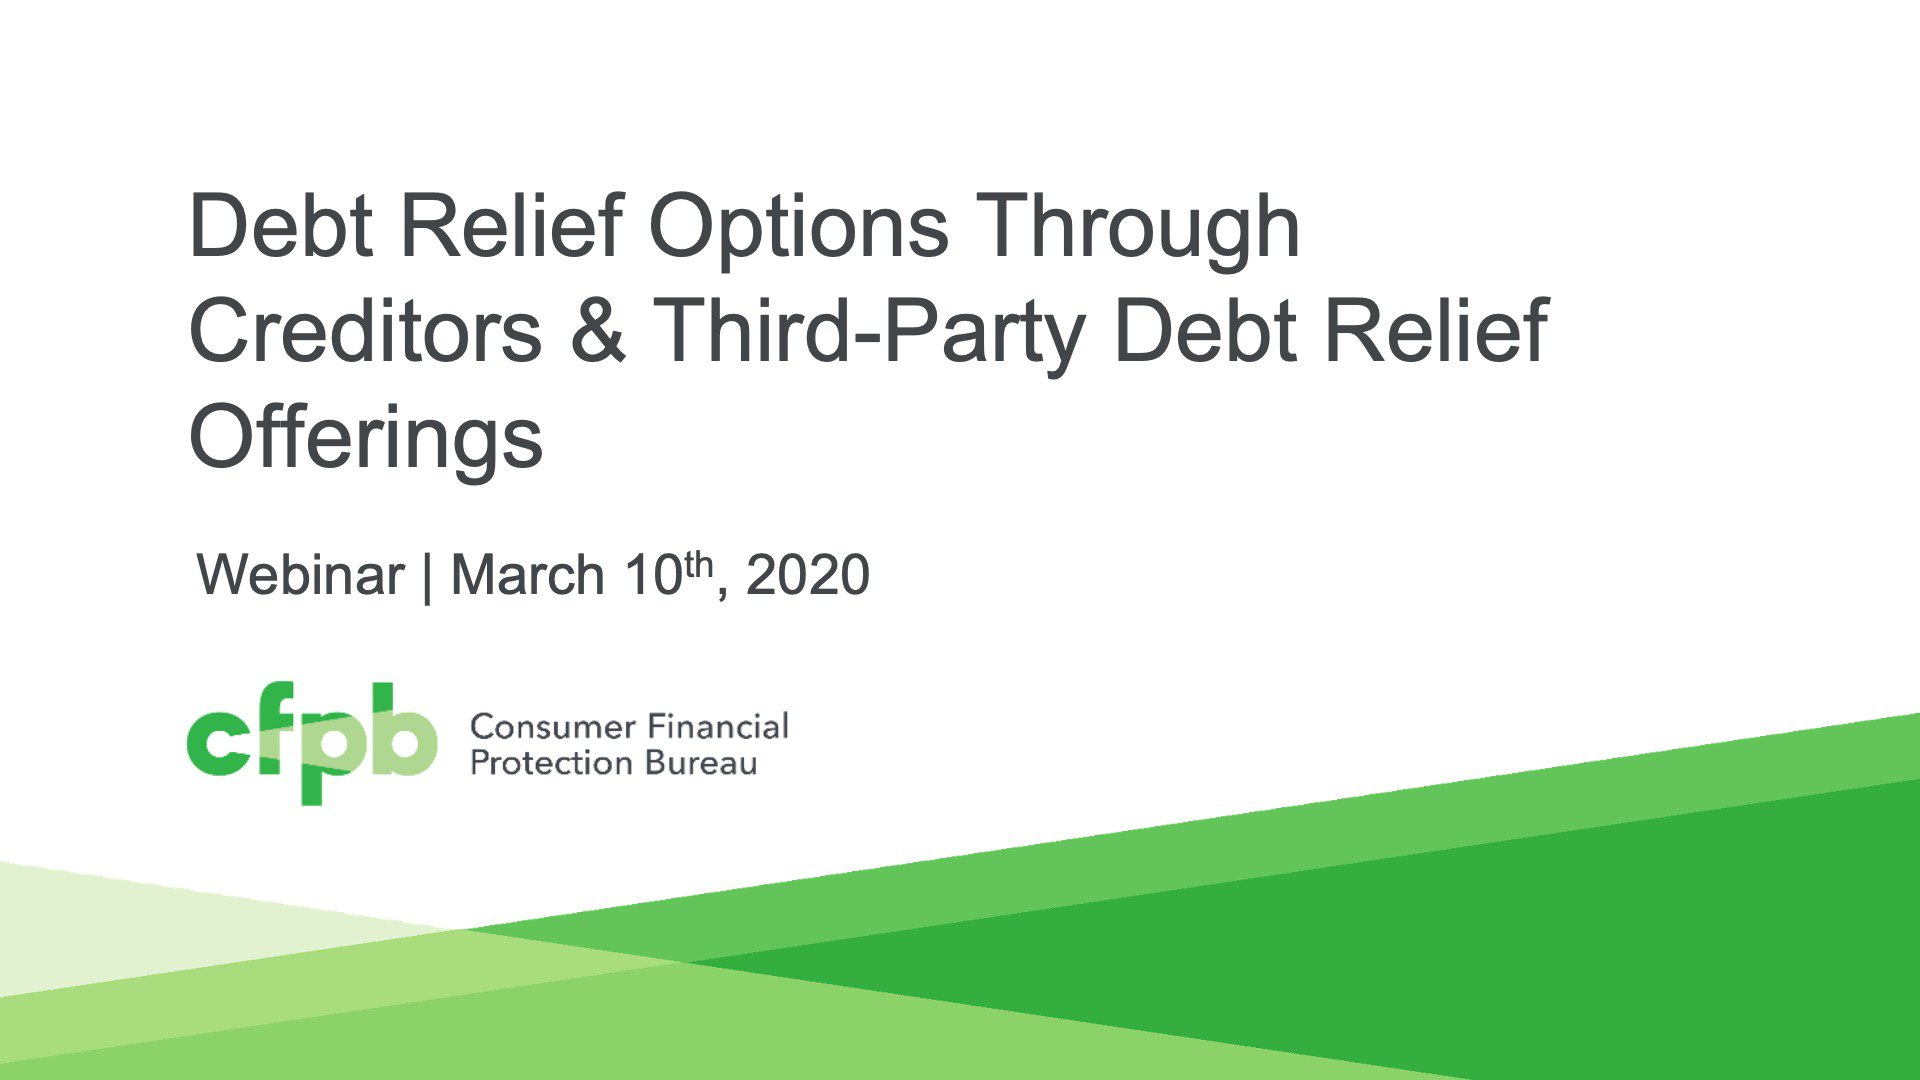 Sessions 1 & 2: Debt Relief Options Through Creditors & Third-Party Debt Relief Offerings